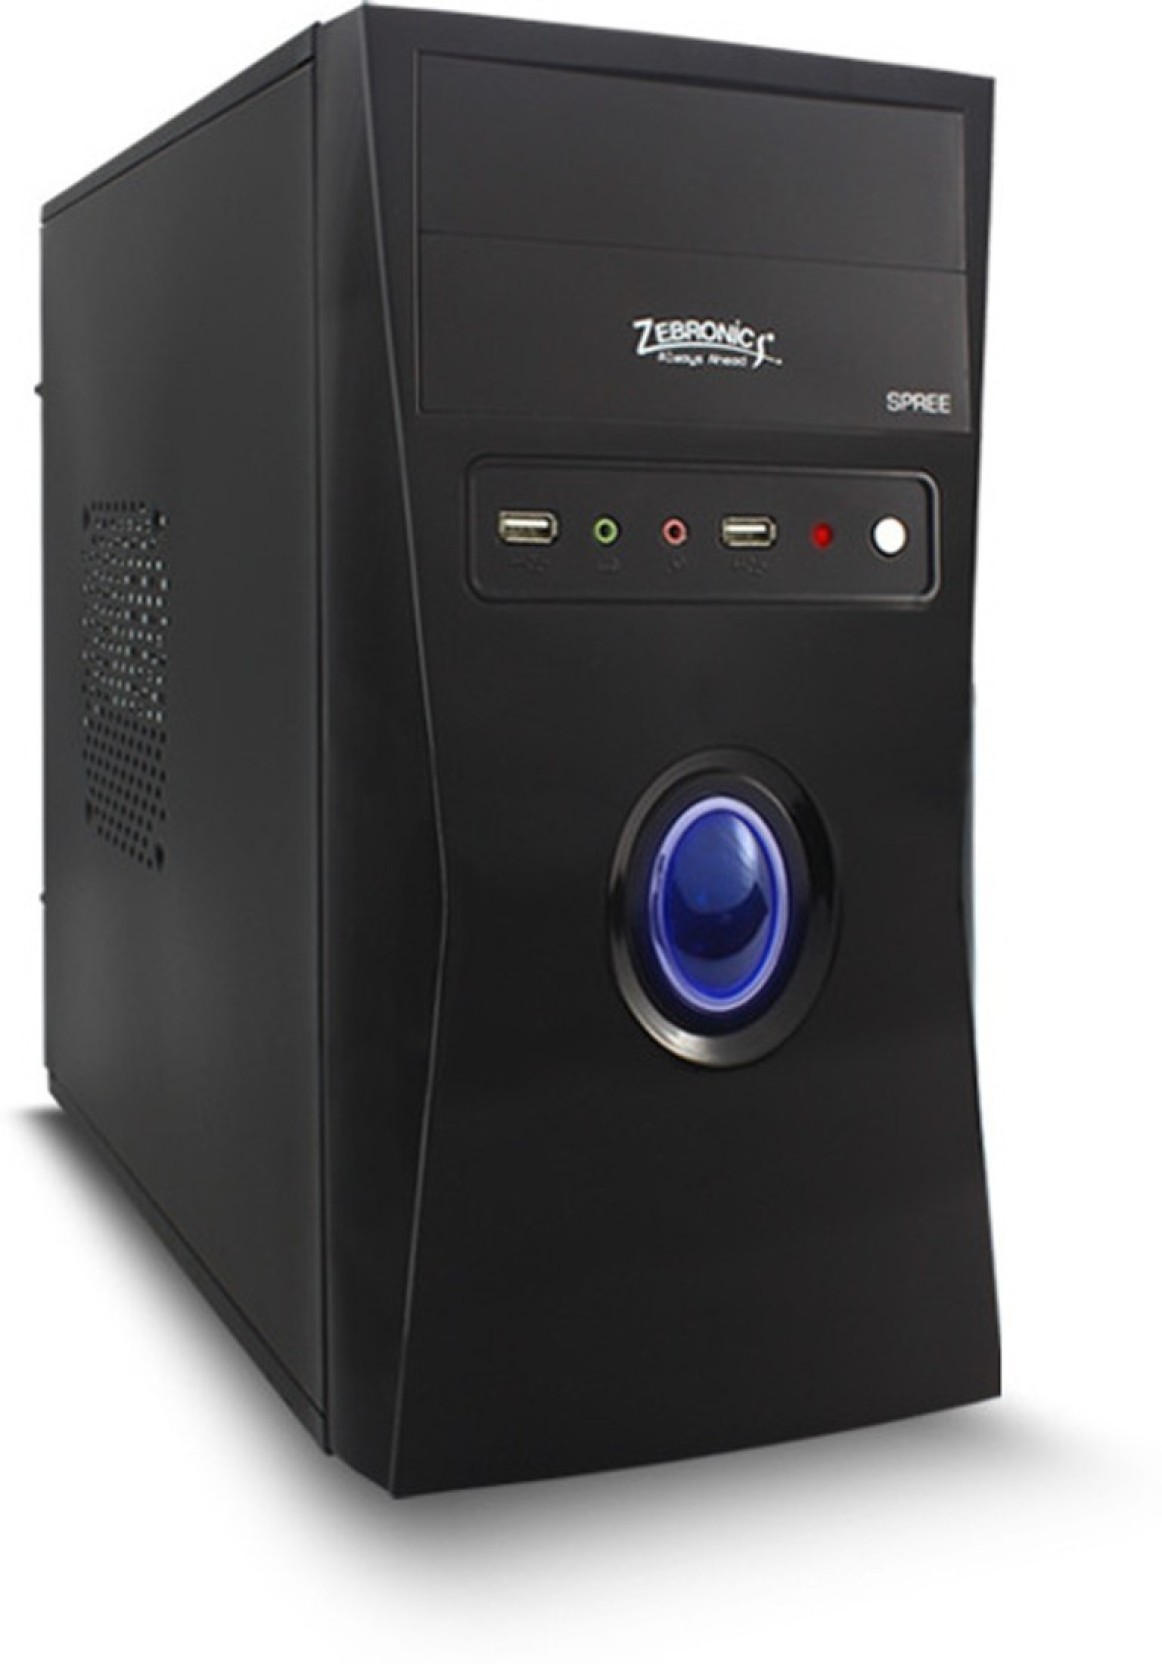 Zebronics Intel Core 2 Duo Desktop Cpu Mini Tower With Prosessor E7500 4 Gb Ram 500 Hard Disk Windows Xp